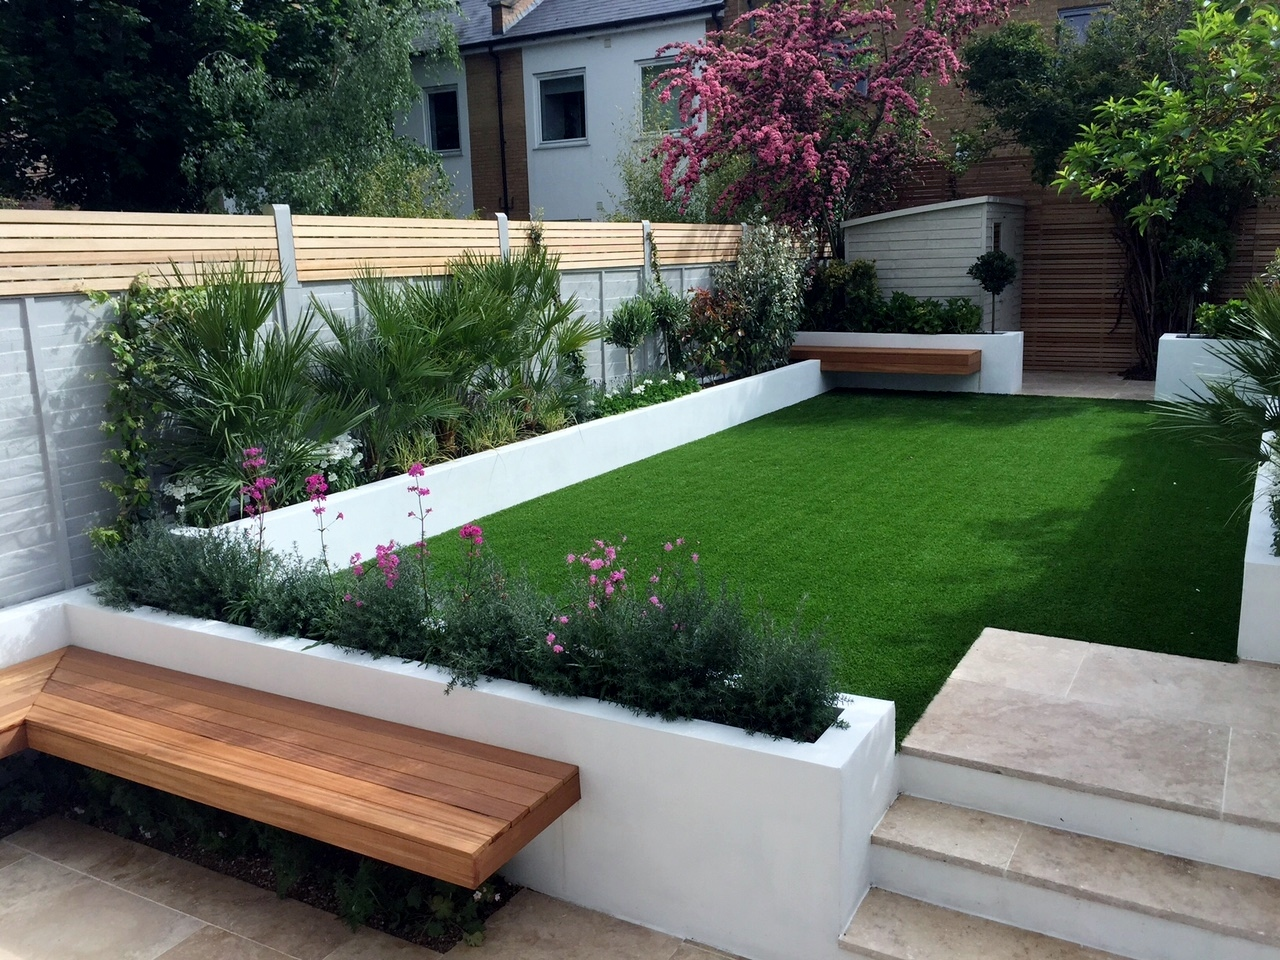 Modern garden design ideas fulham chelsea battersea Modern front garden ideas uk